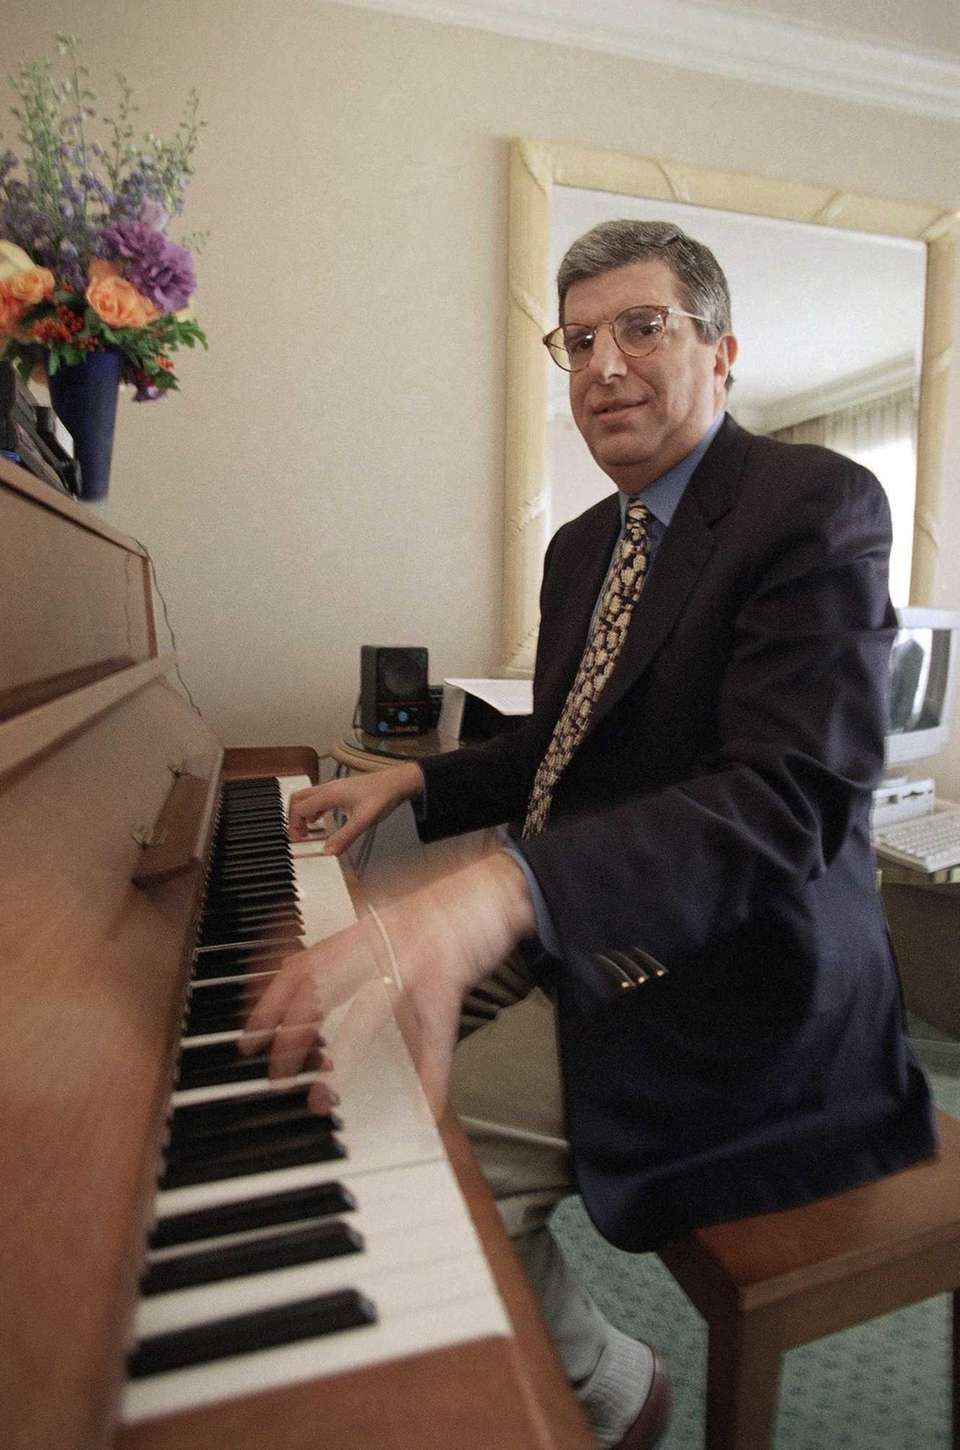 Composer Marvin Hamlisch plays the piano in a